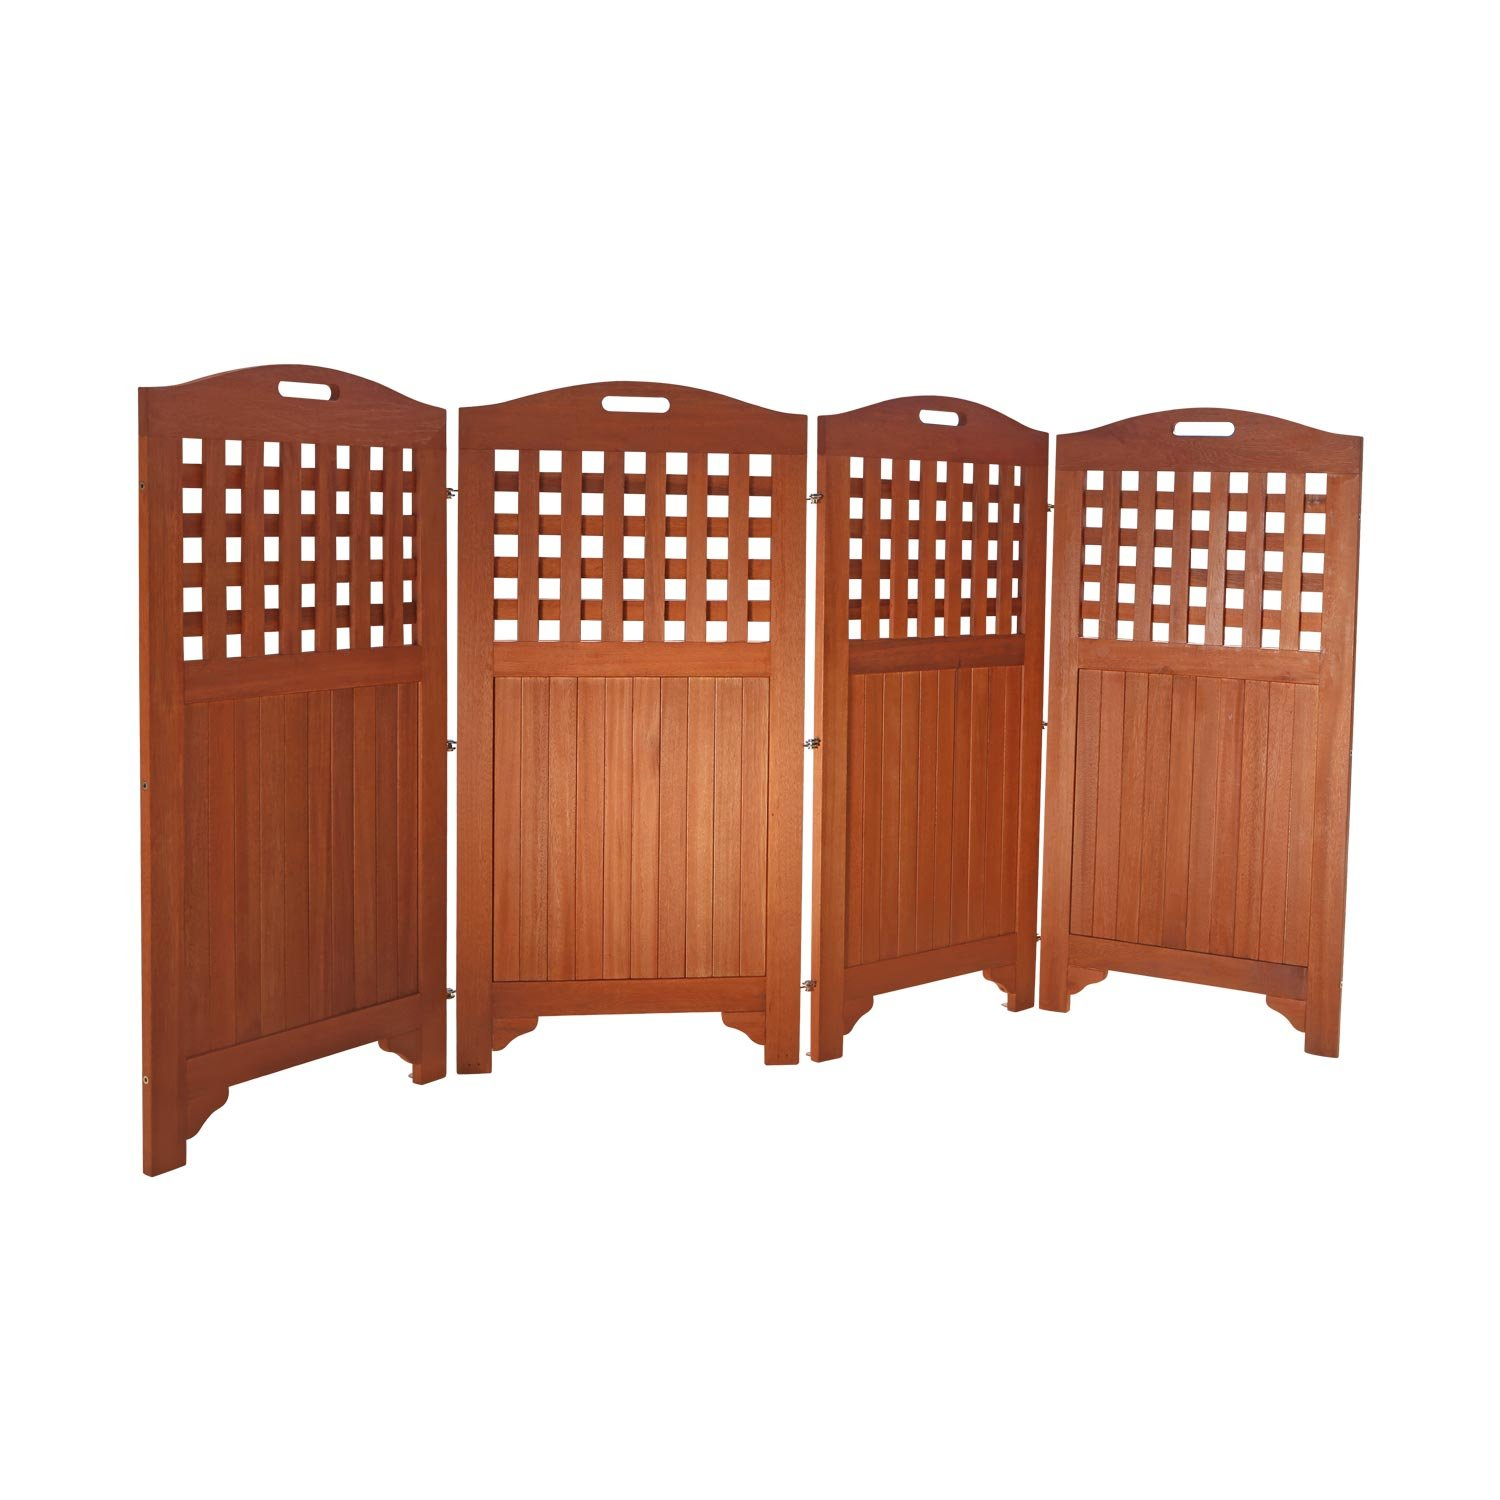 Amazon.com : Vifah V163 Acacia Hardwood Privacy Screen : Outdoor ...